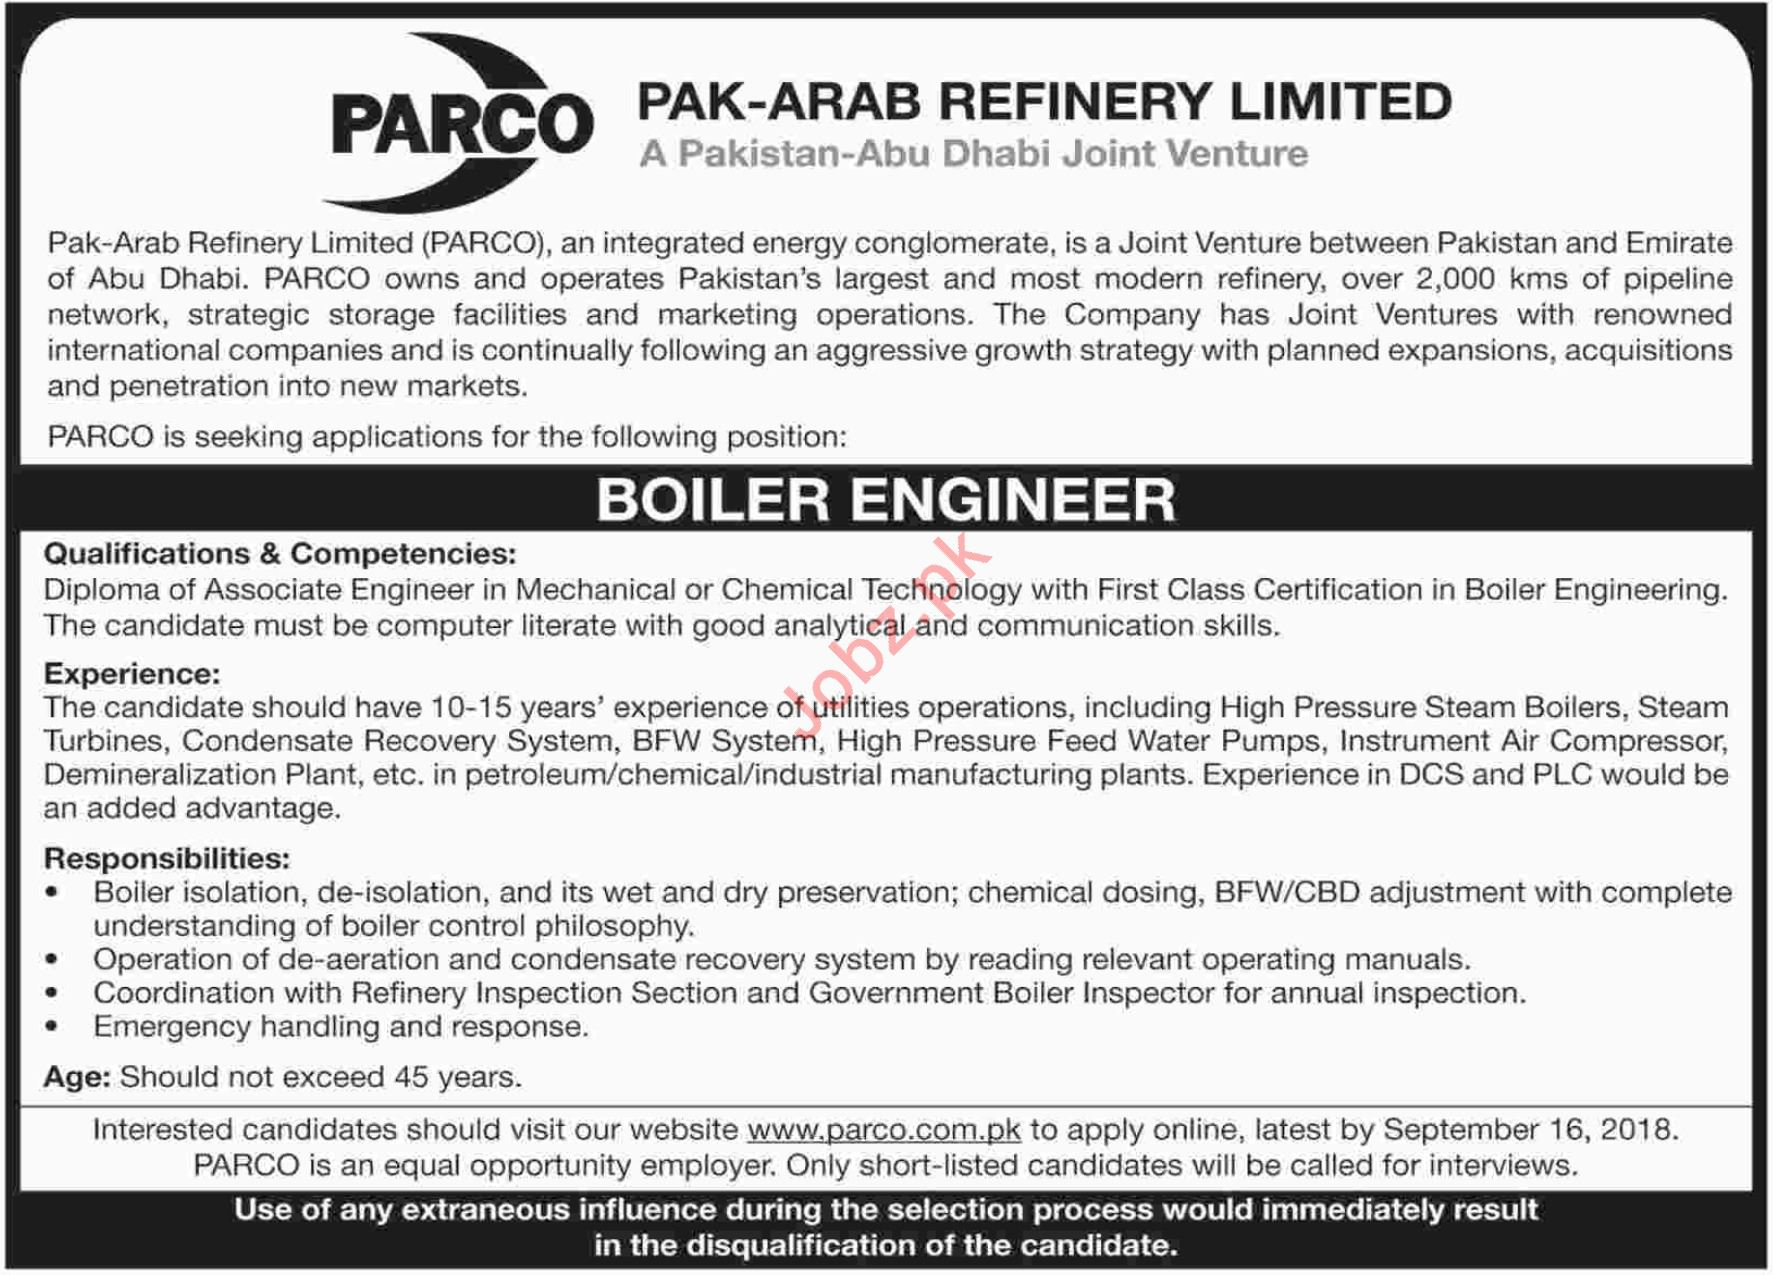 Boiler Engineer for Pak Arab Refinery Limited PARCO